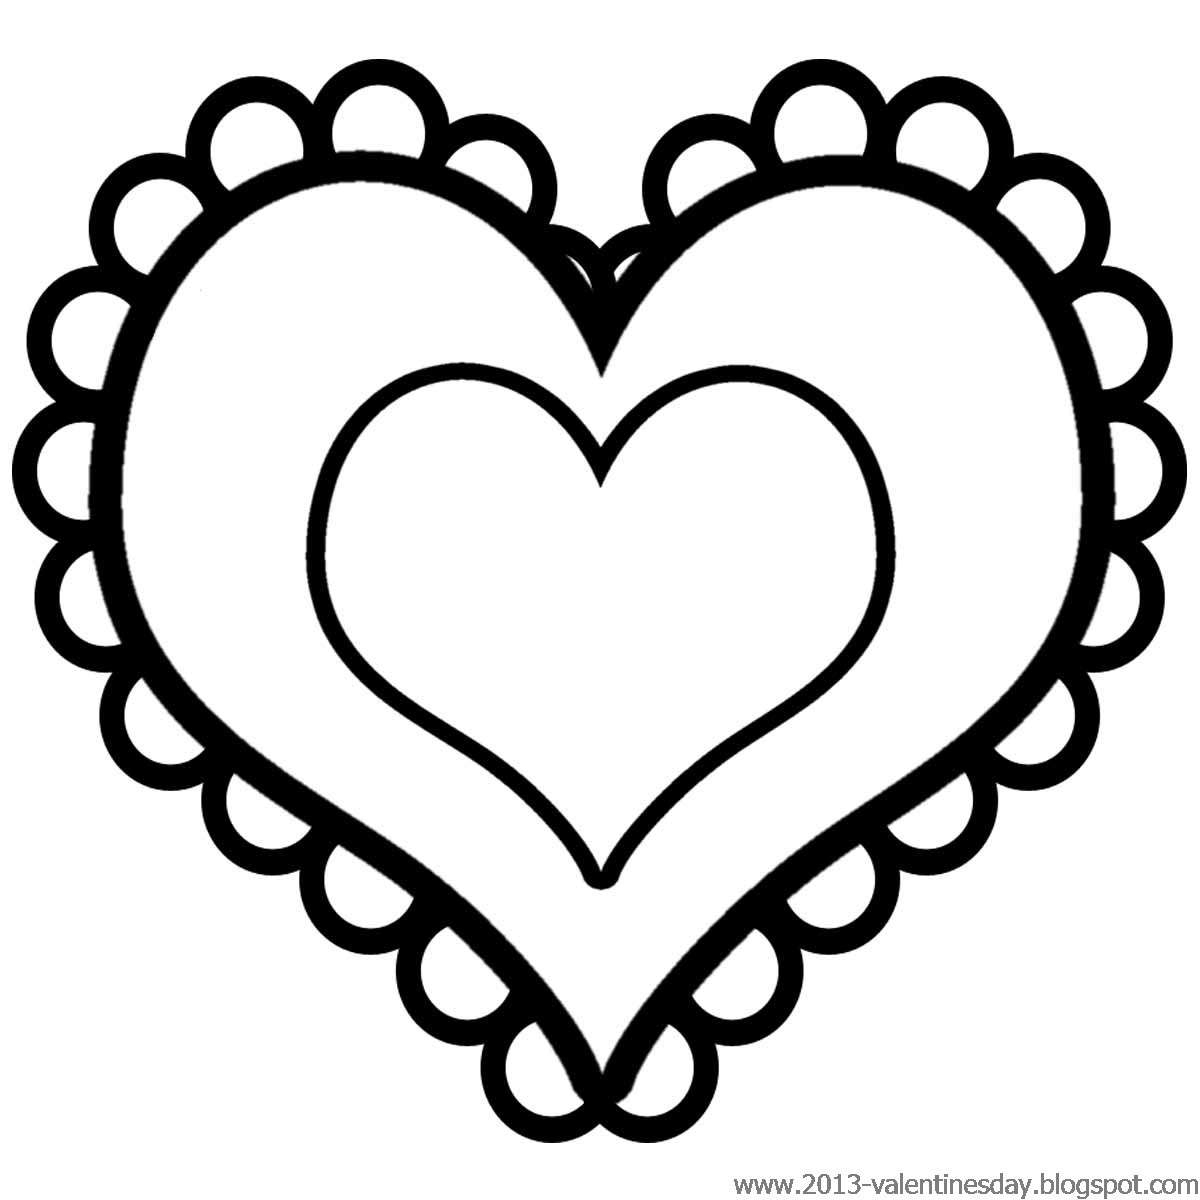 Heart Vector   Black And White Heart Clip Art